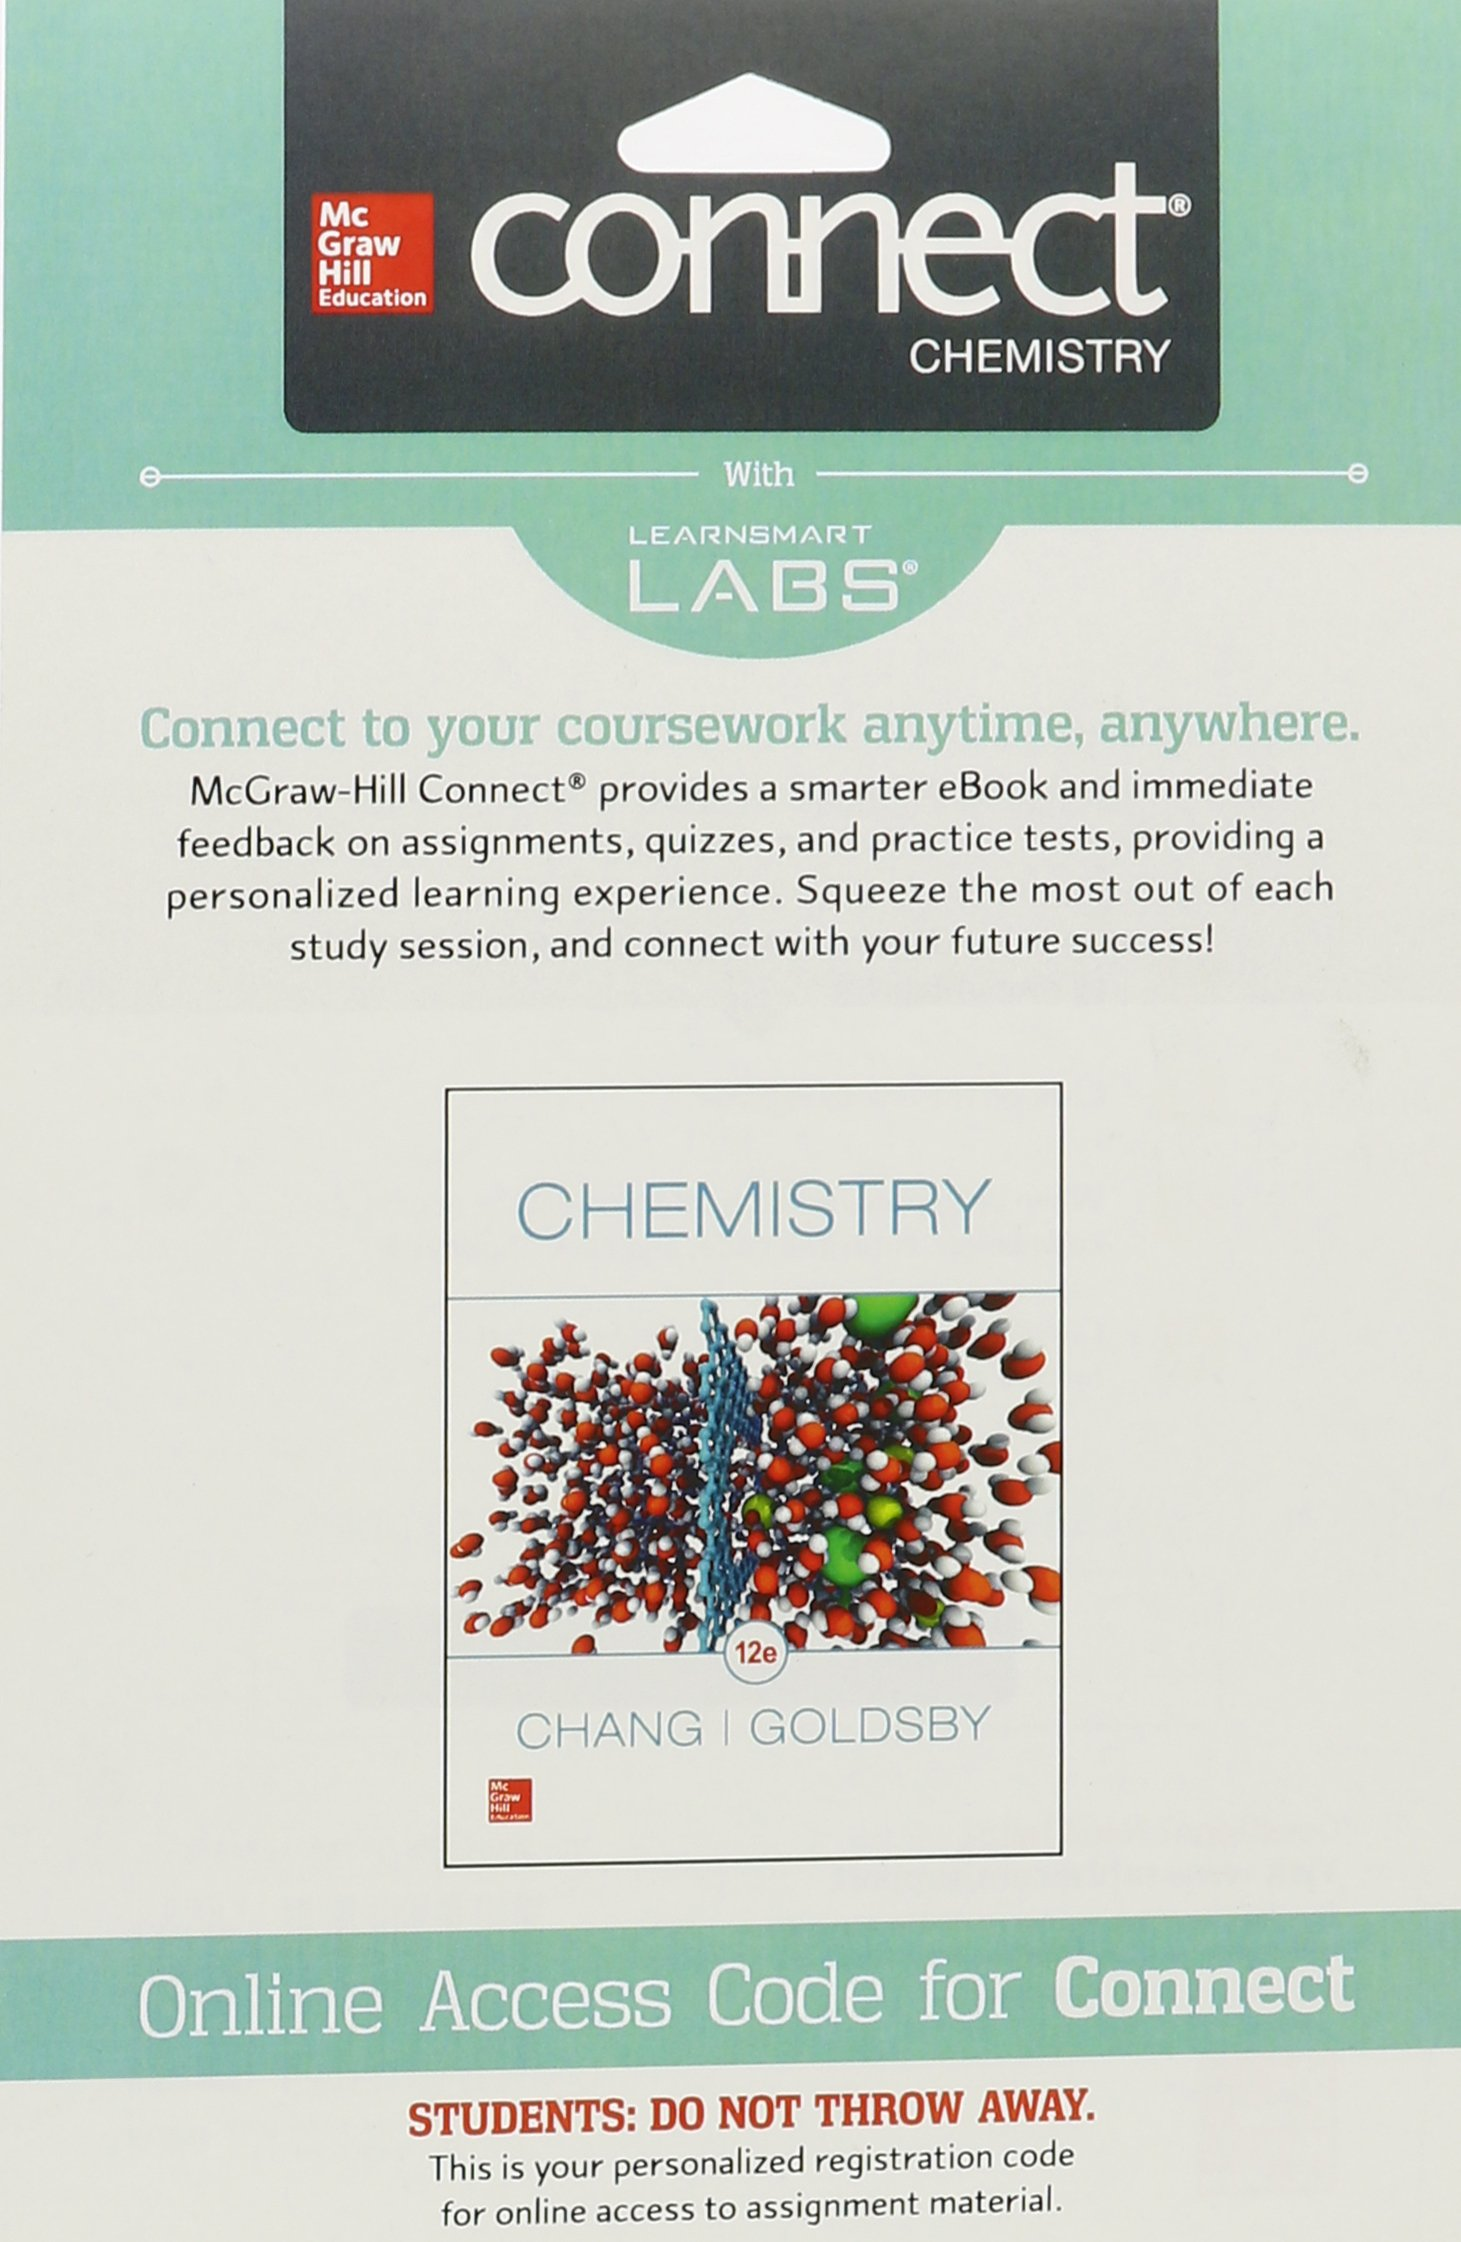 Chemistry raymond chang dr kenneth goldsby professor chemistry raymond chang dr kenneth goldsby professor 9780078021510 chemistry amazon canada fandeluxe Choice Image